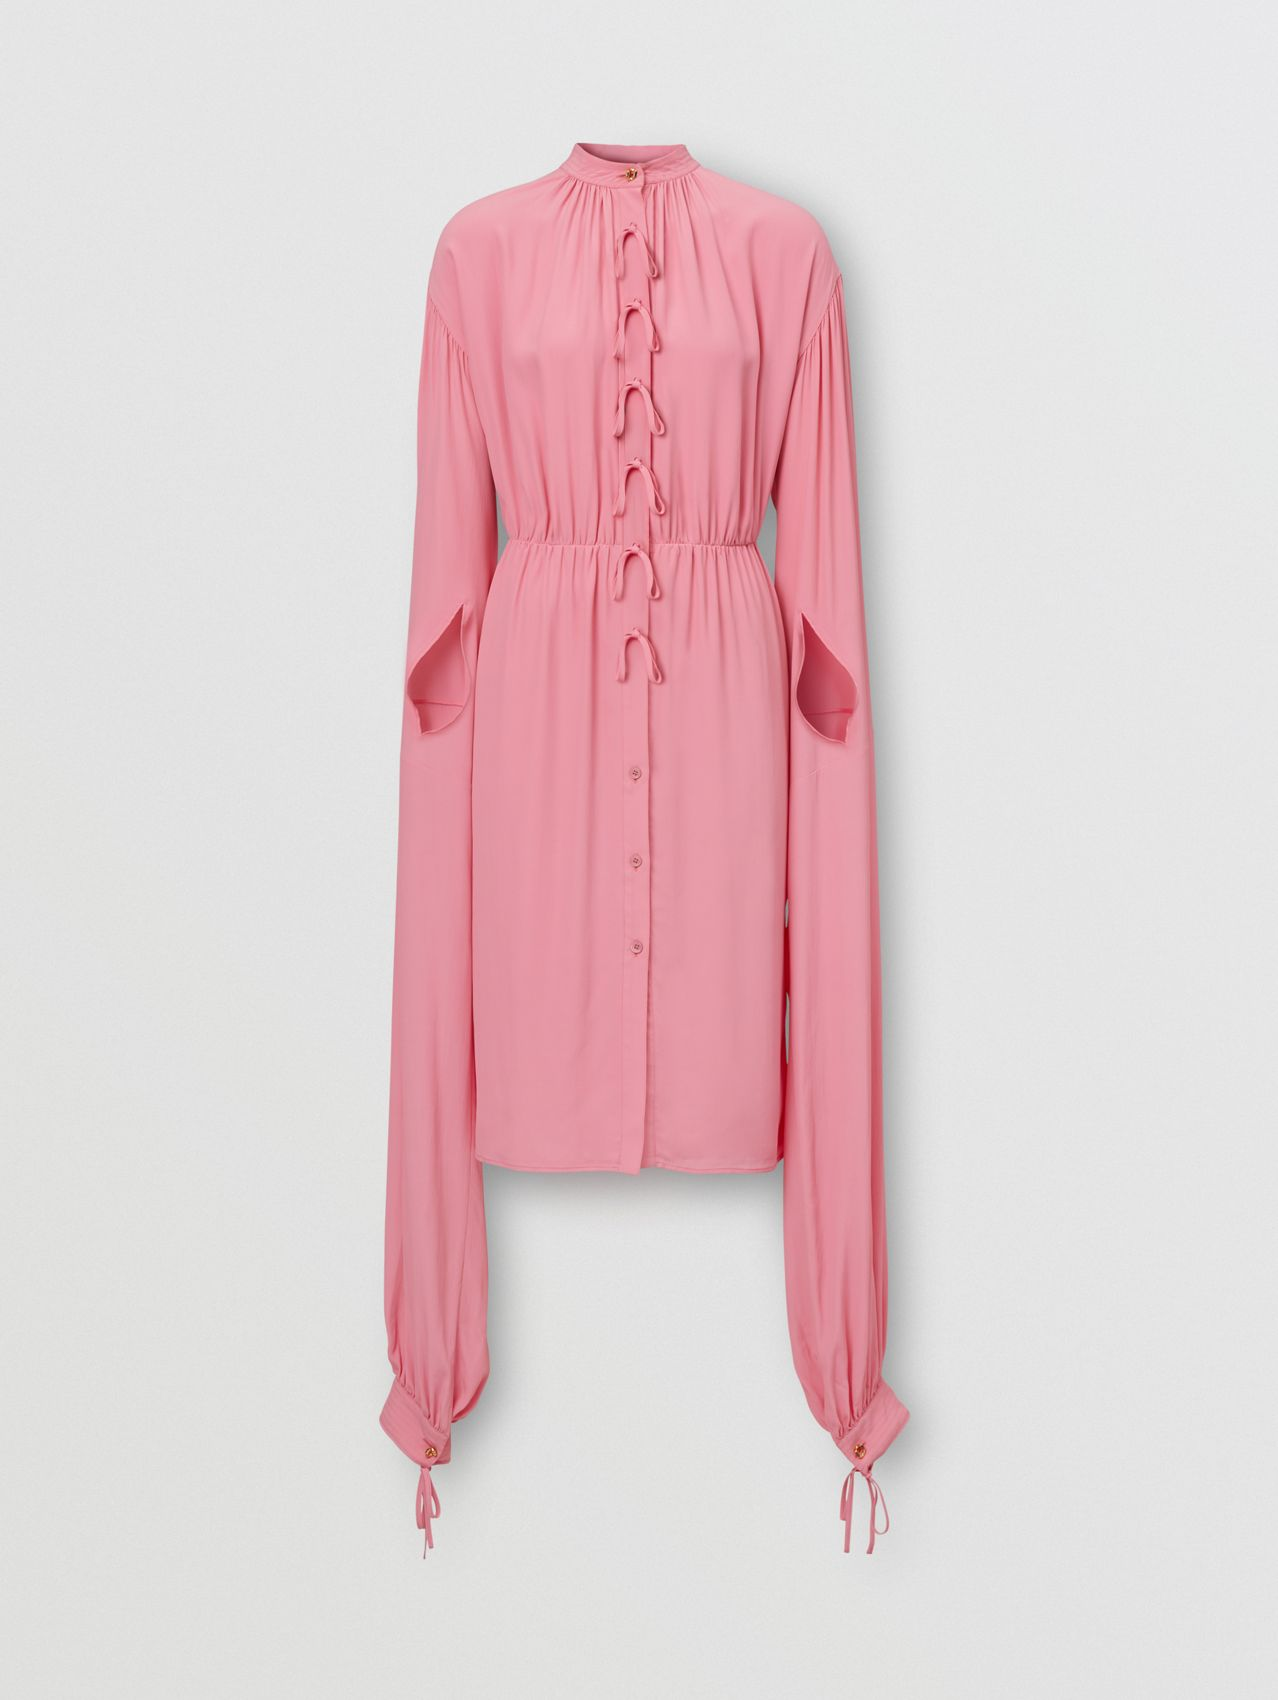 Loop-back Sleeve Silk Crepe De Chine Dress in Bubblegum Pink